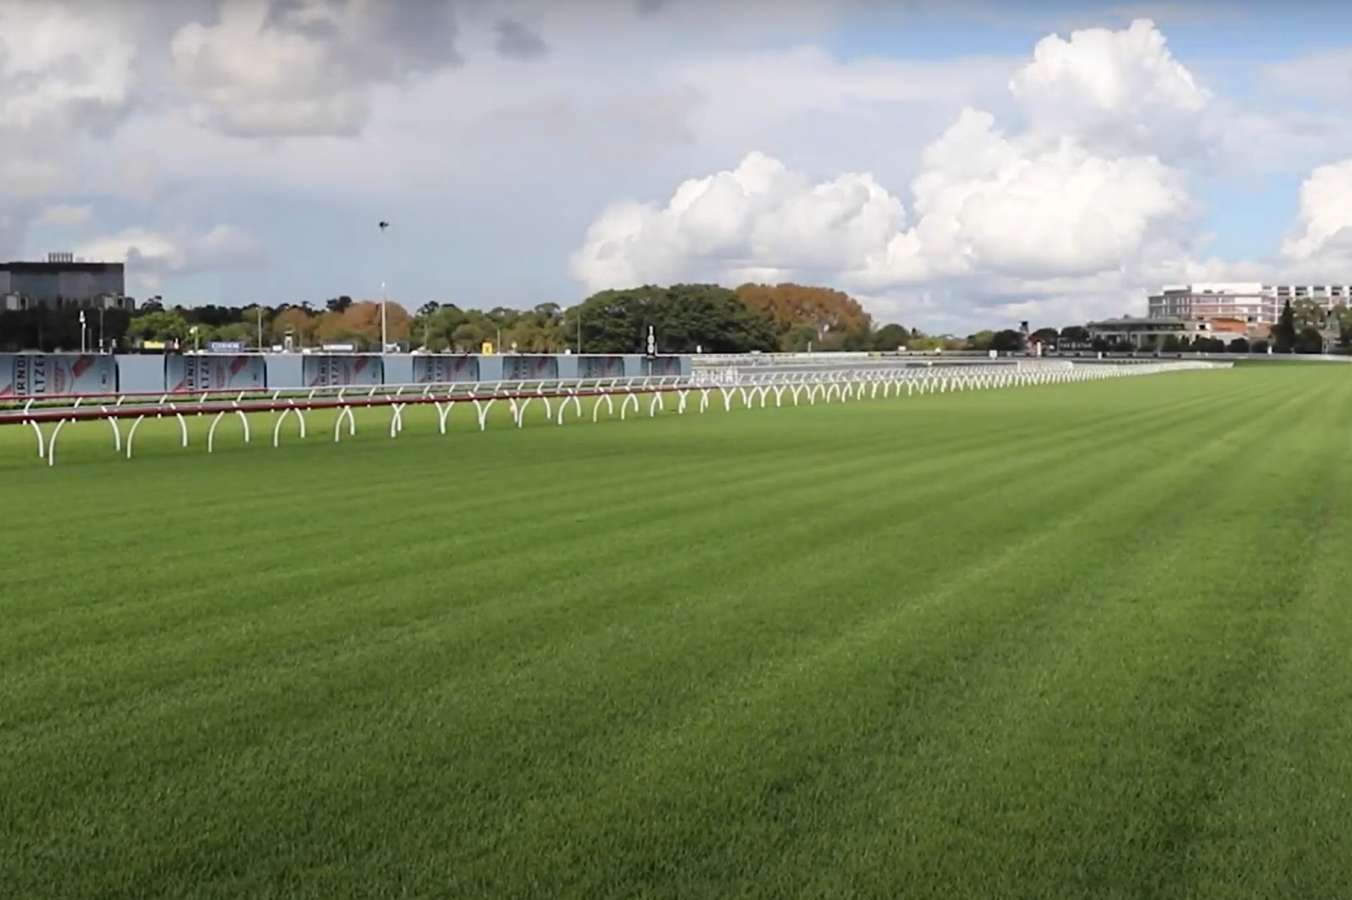 The straight at Randwick